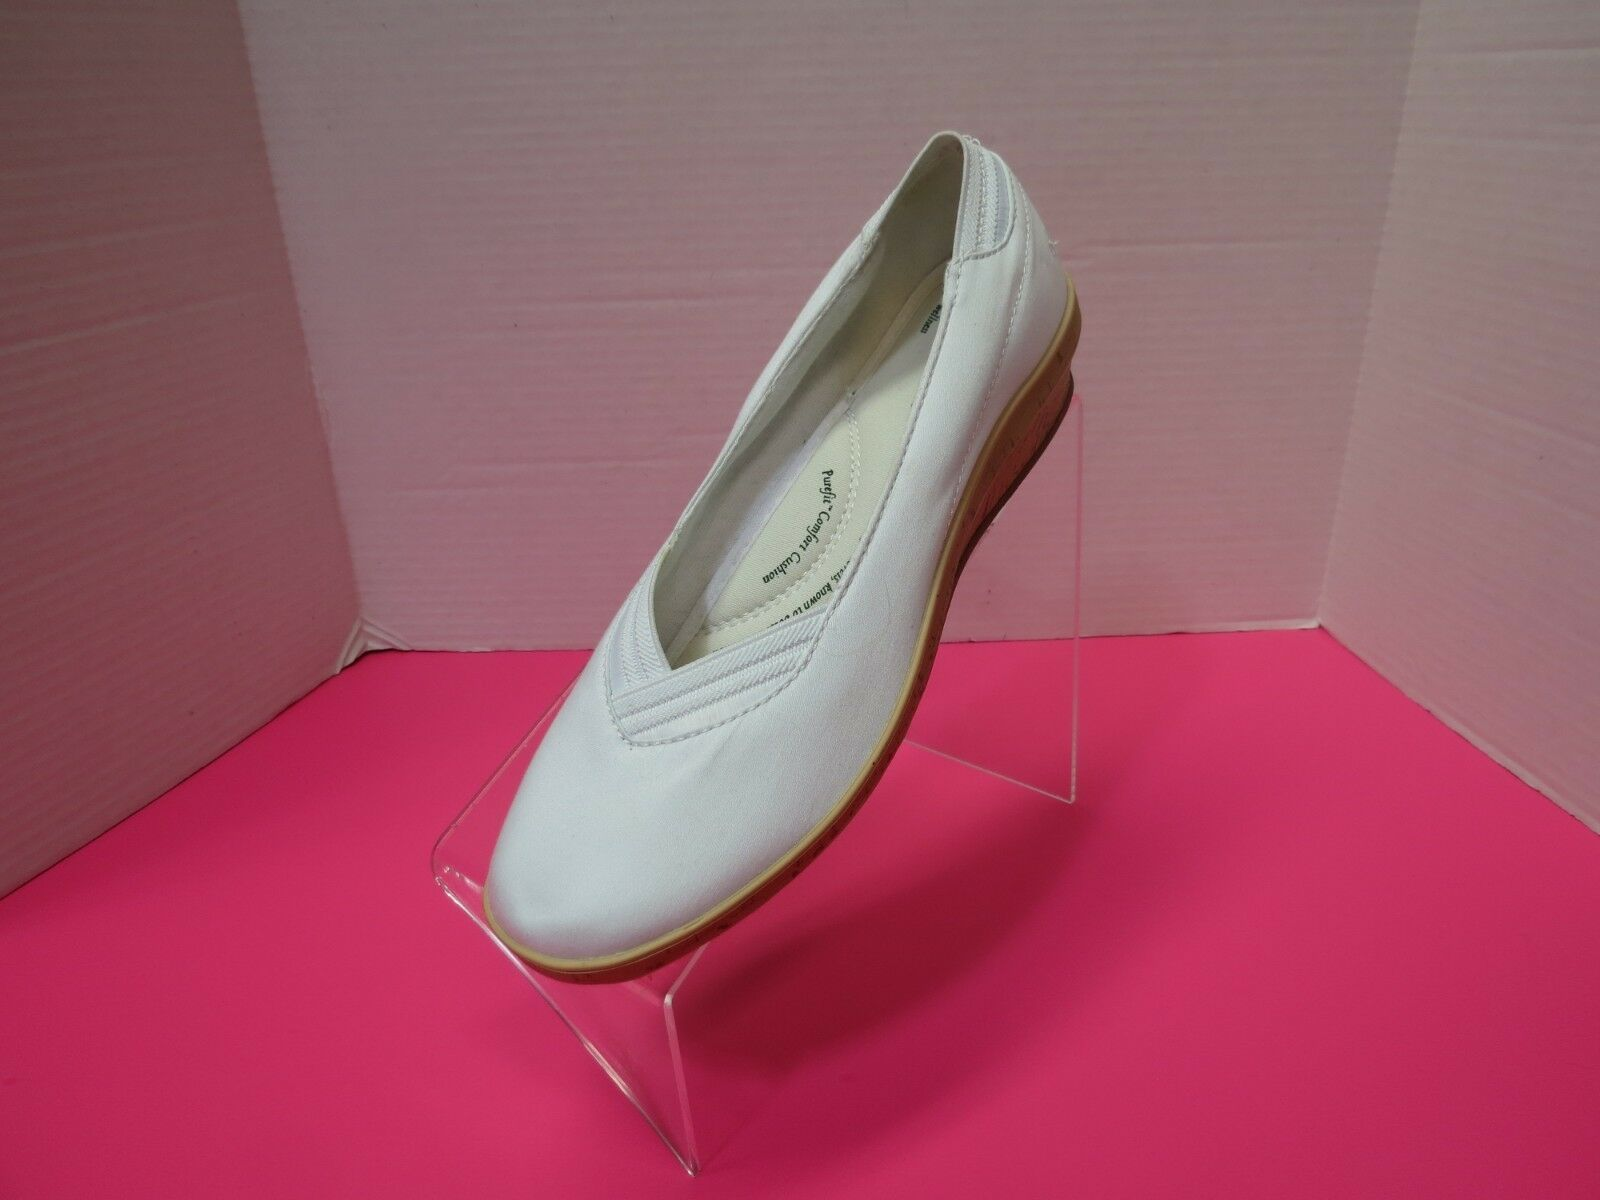 Primary image for Grasshoppers Womens  Misty Cotton Ankle High Flat White Shoe Size 8.5